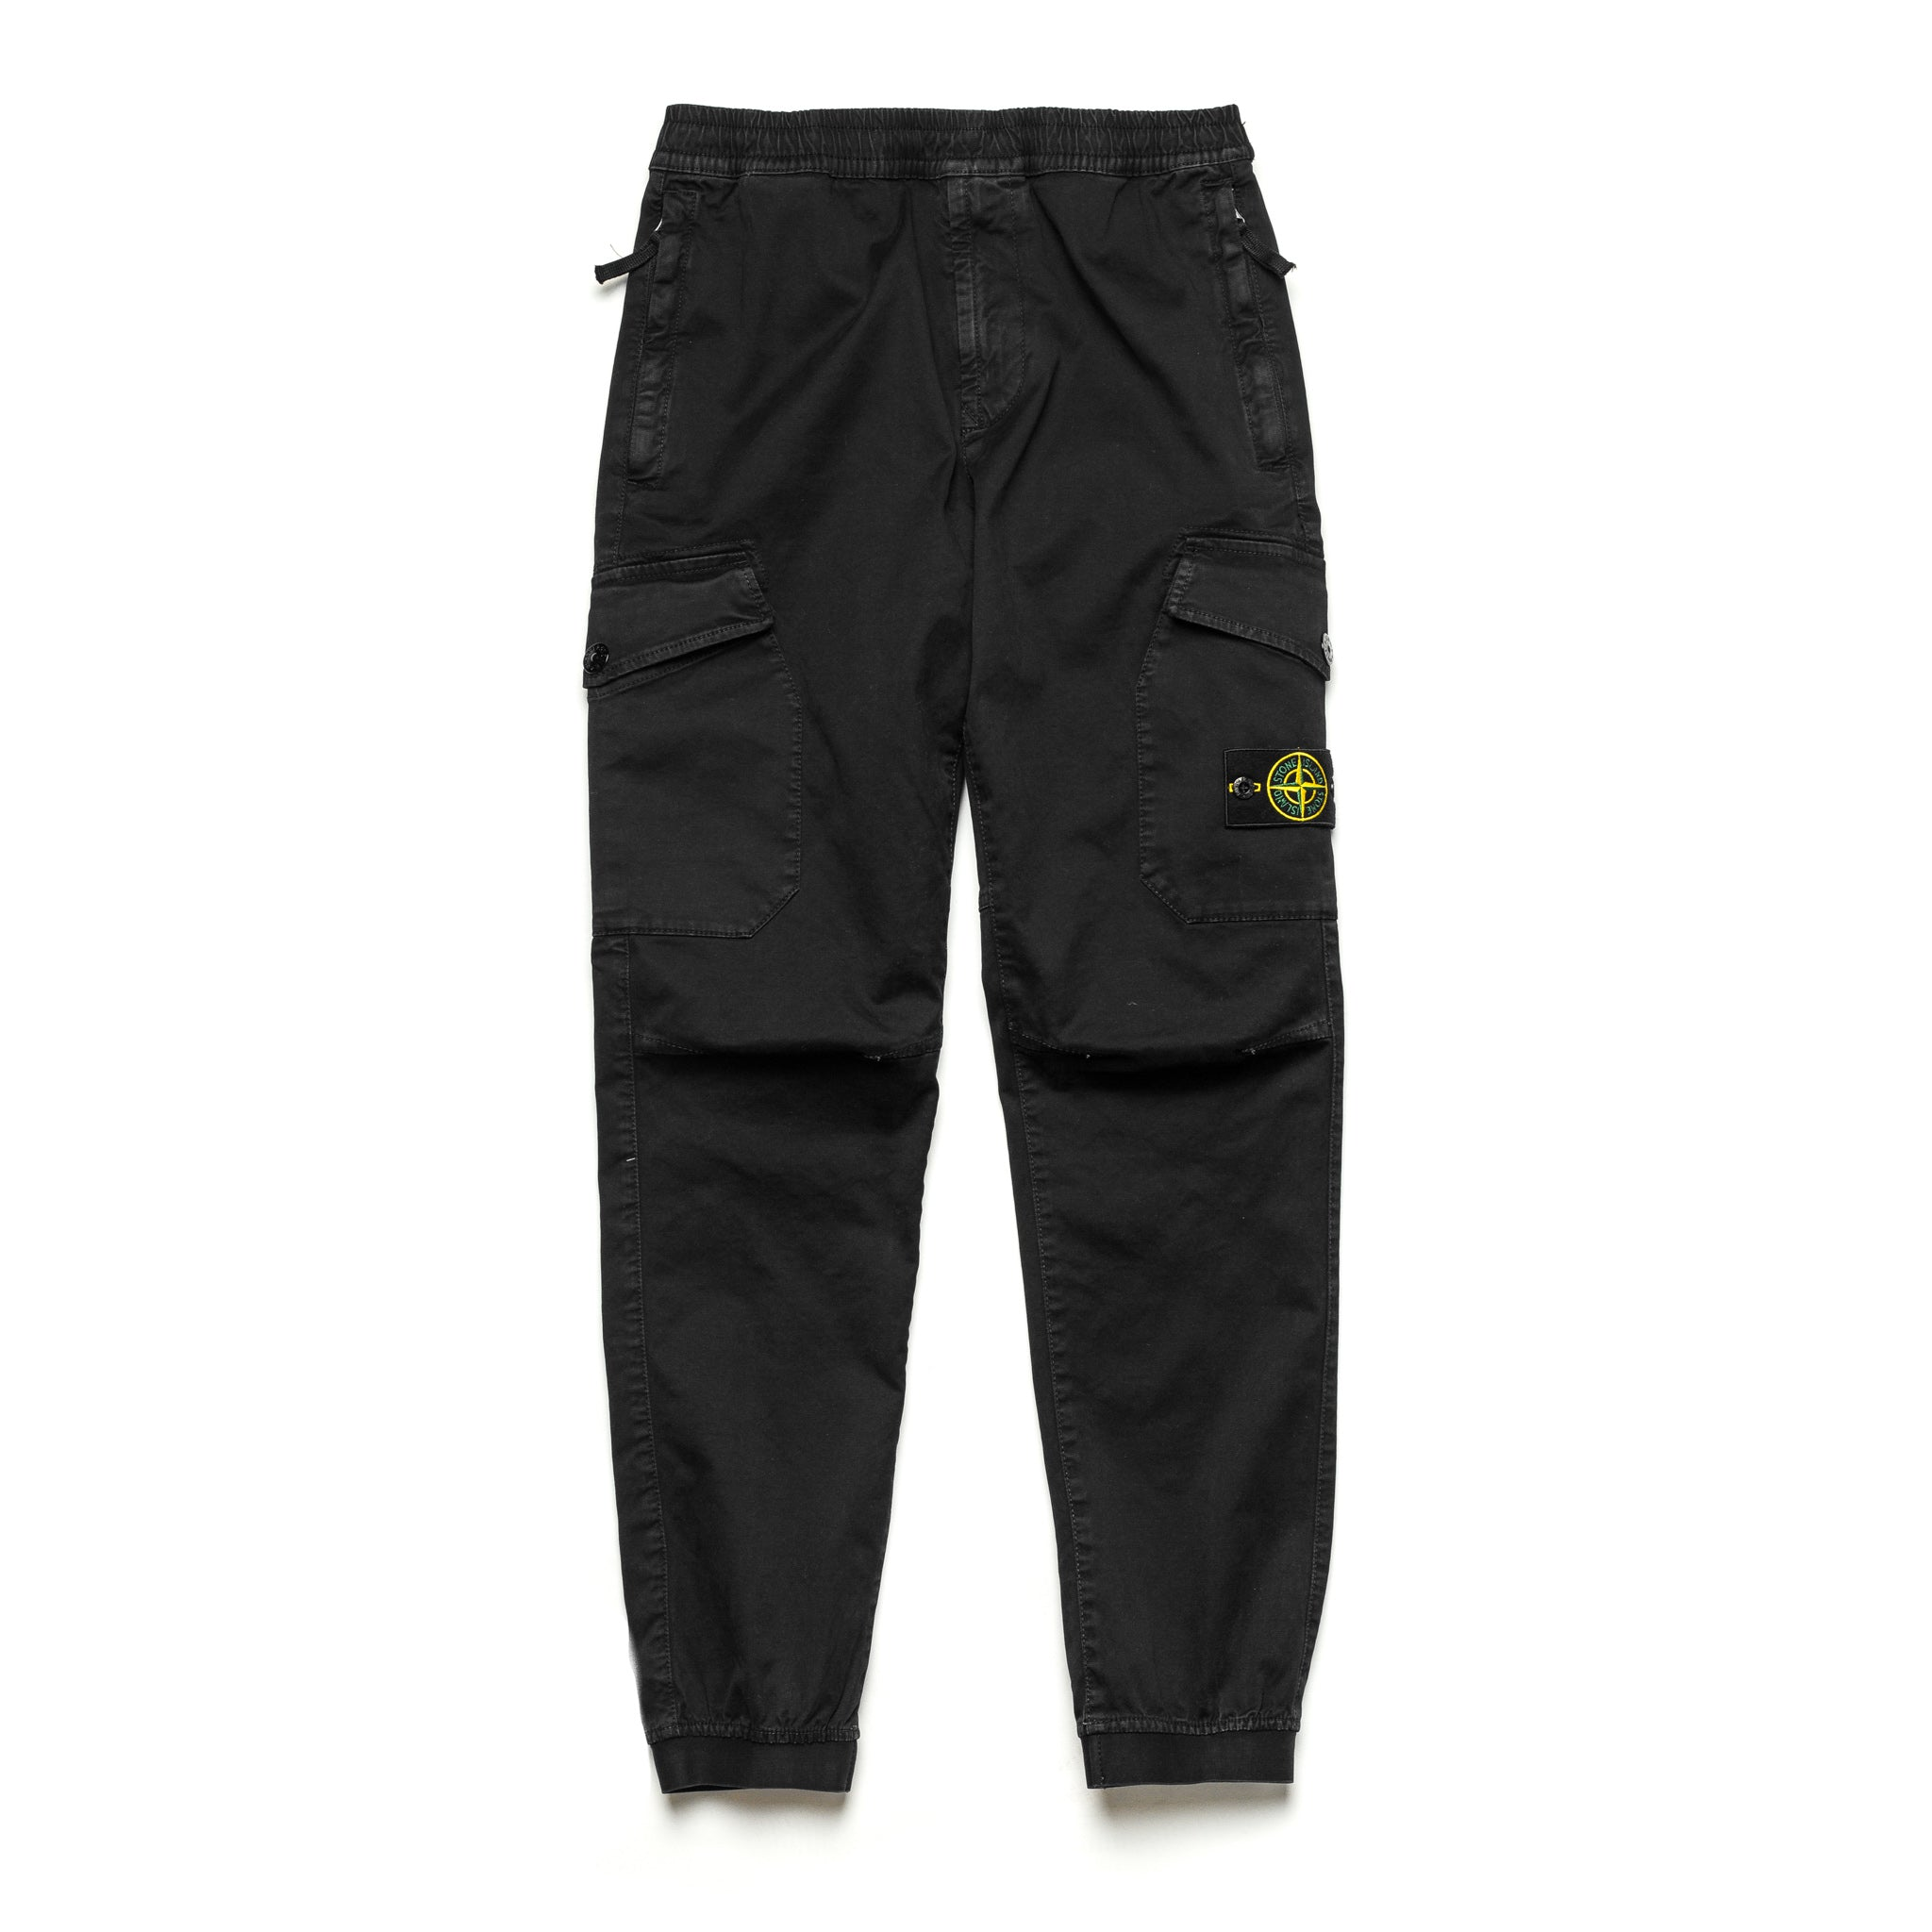 TC + OLD Cargo Cuffed Pants 7315314L1 Black